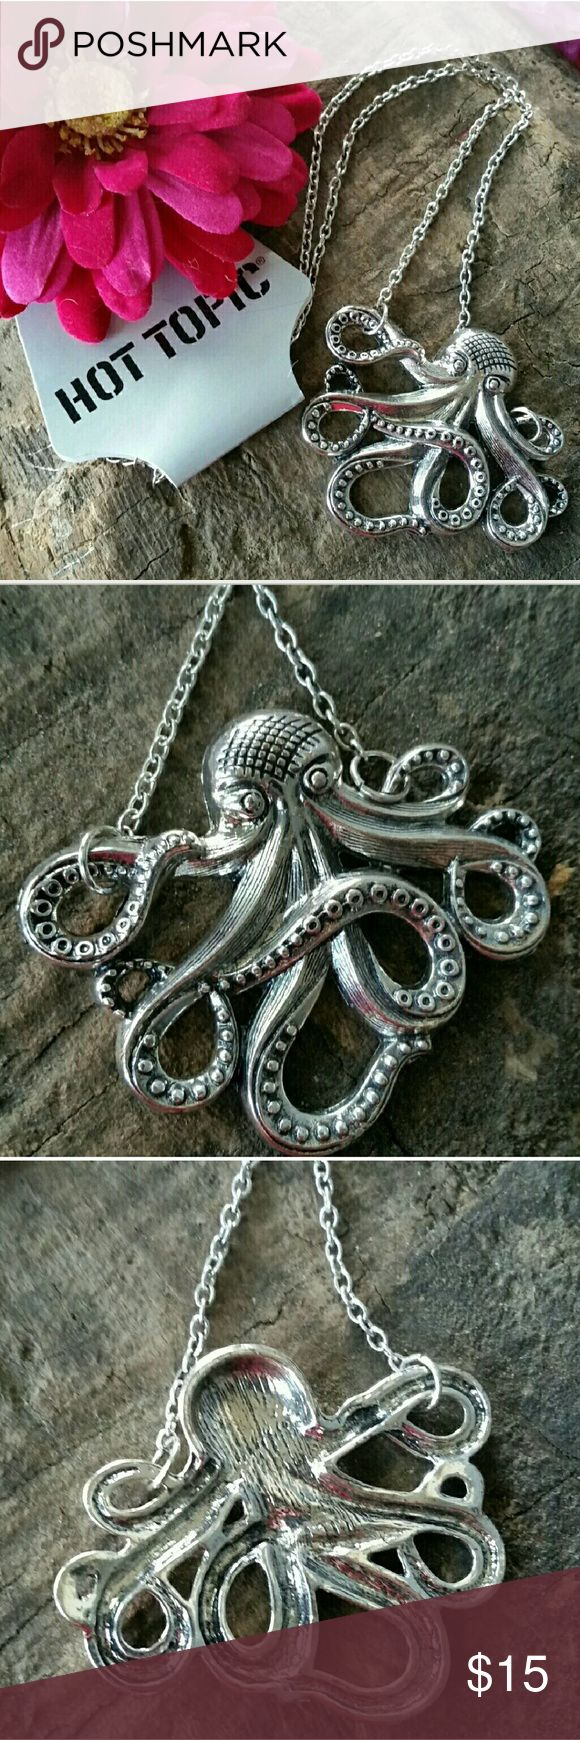 """Silver Octopus Necklace Hi Poshers! I'm selling this adorable octopus necklace! This necklace would look so cute with a floral summer dress or a flowy blouse and some denim shorts! Very versatile. NWT chain is 18.5"""" but it's adjustable Hot Topic Jewelry Necklaces"""